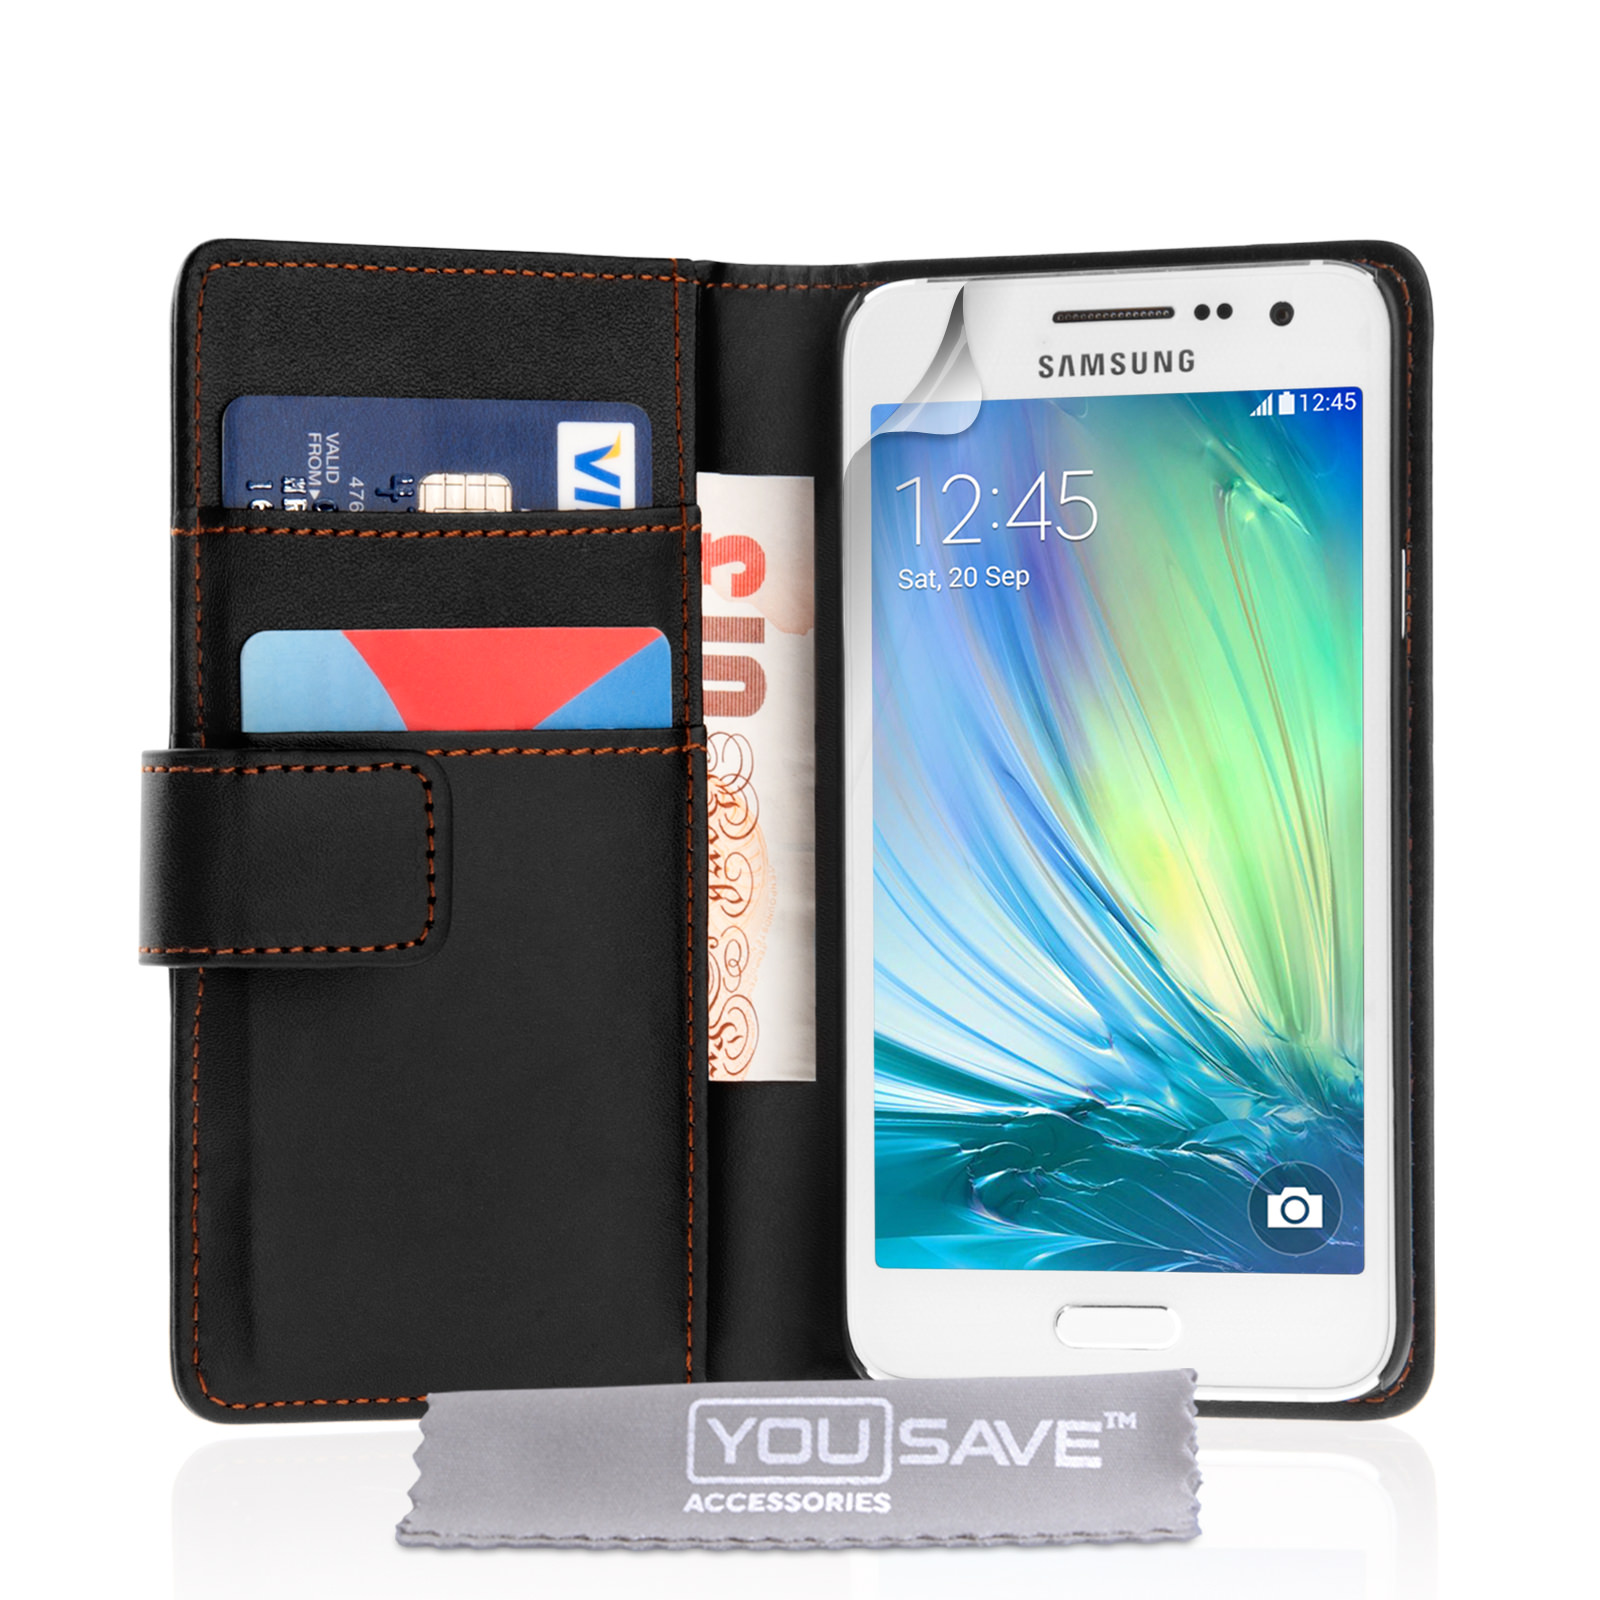 yousave accessories samsung galaxy a3 2016 leather ef. Black Bedroom Furniture Sets. Home Design Ideas